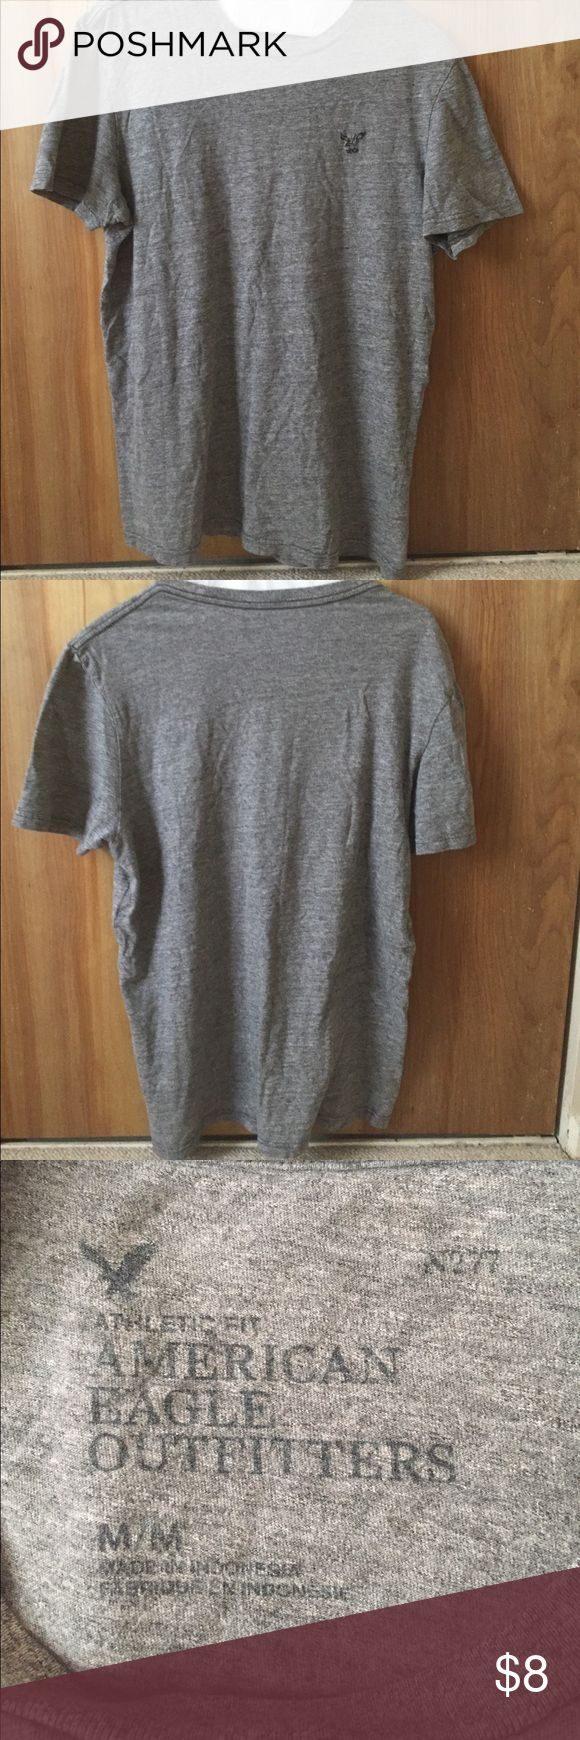 American eagle outfitters size medium men's tshirt American eagle outfitters athletic fit men's size mediums grey tshirt American Eagle Outfitters Shirts Tees - Short Sleeve